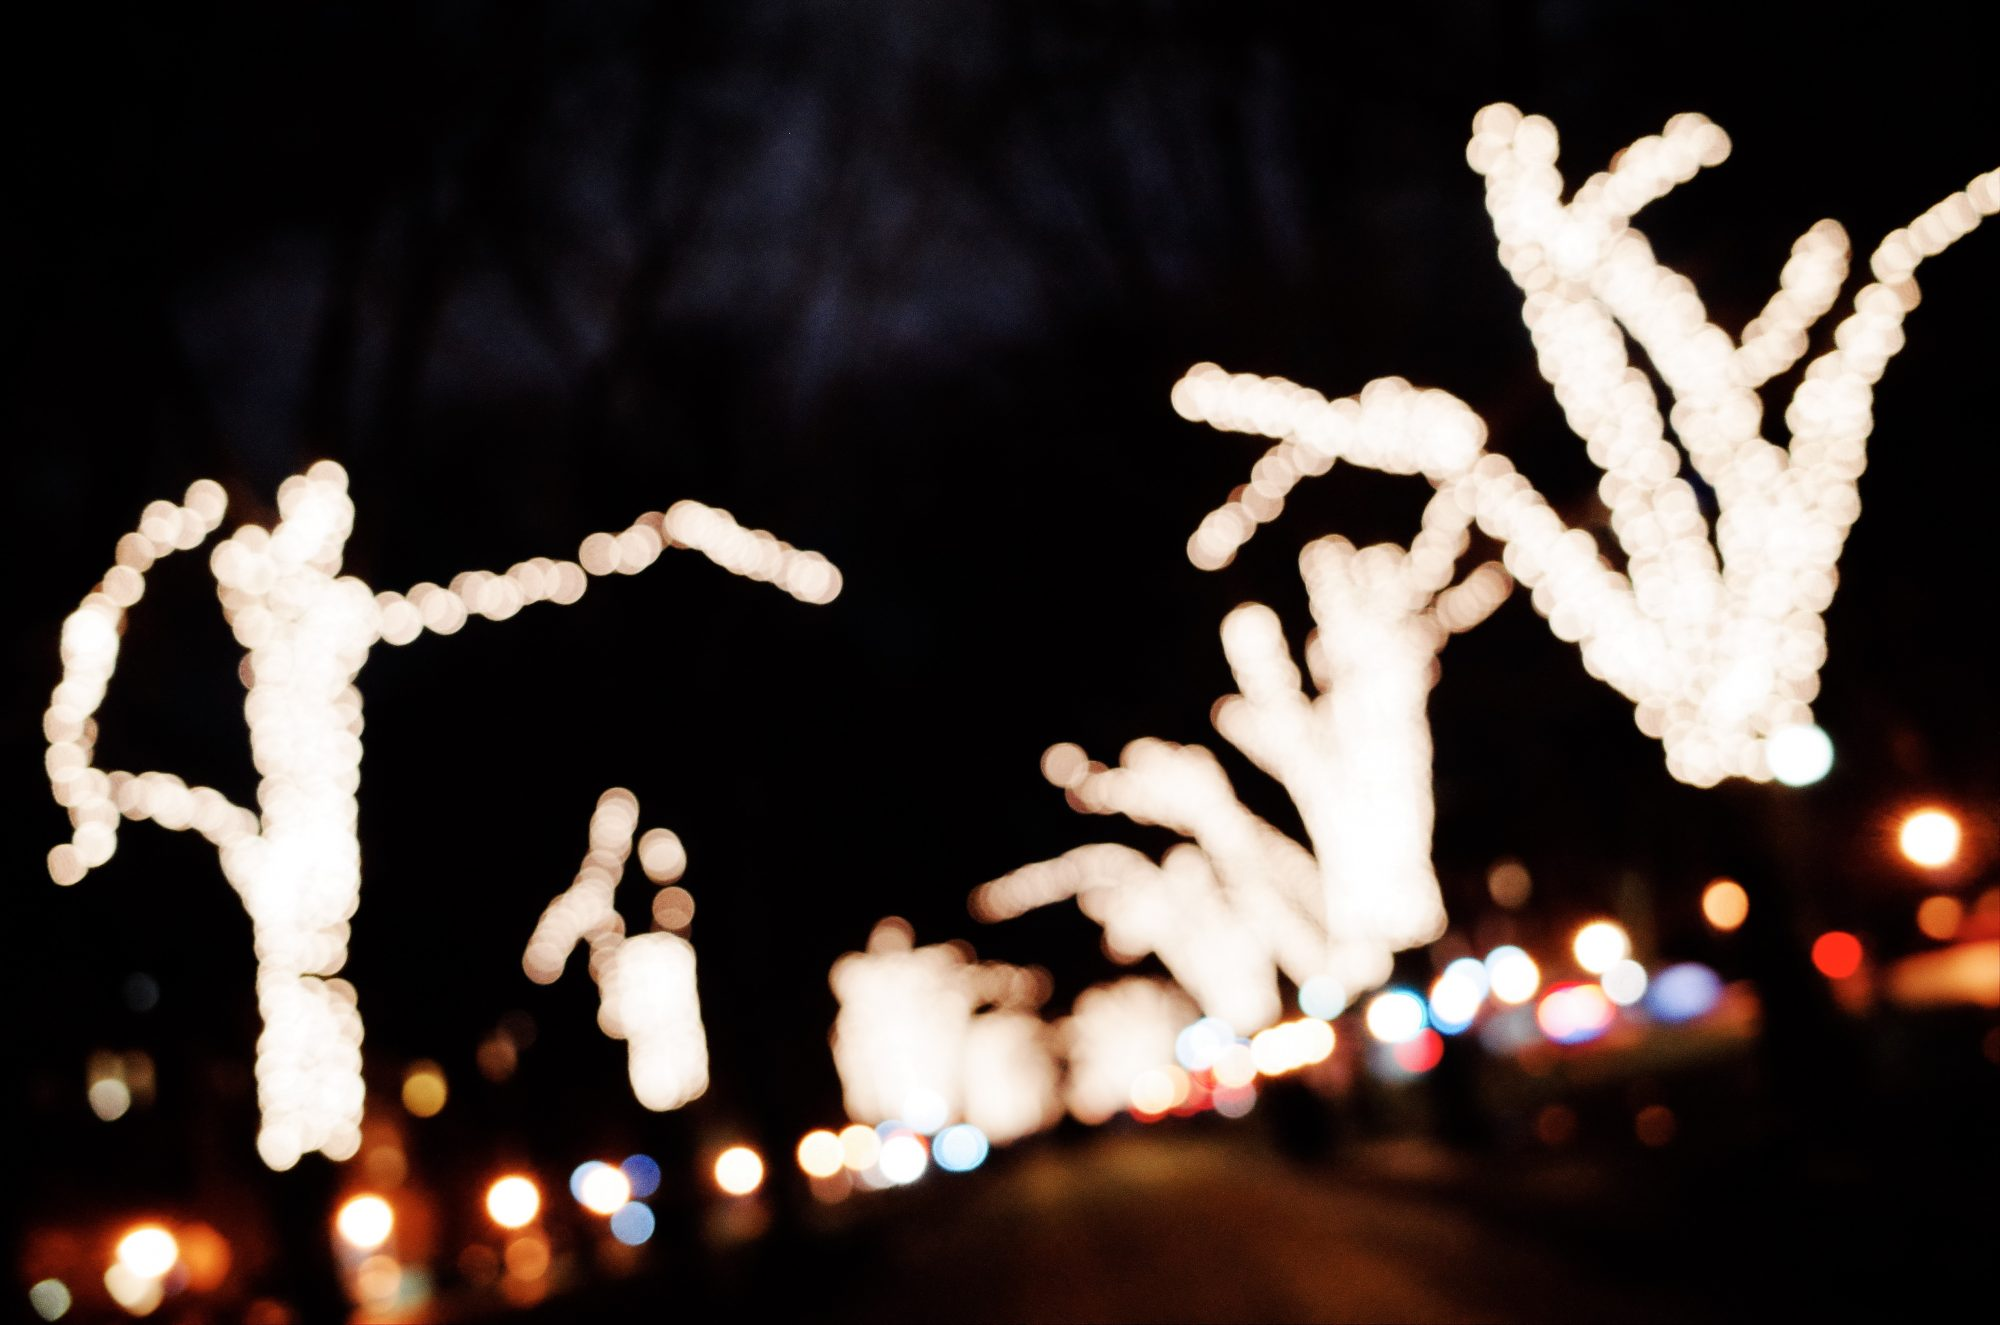 Out of focus trees at night. Boston, 2018